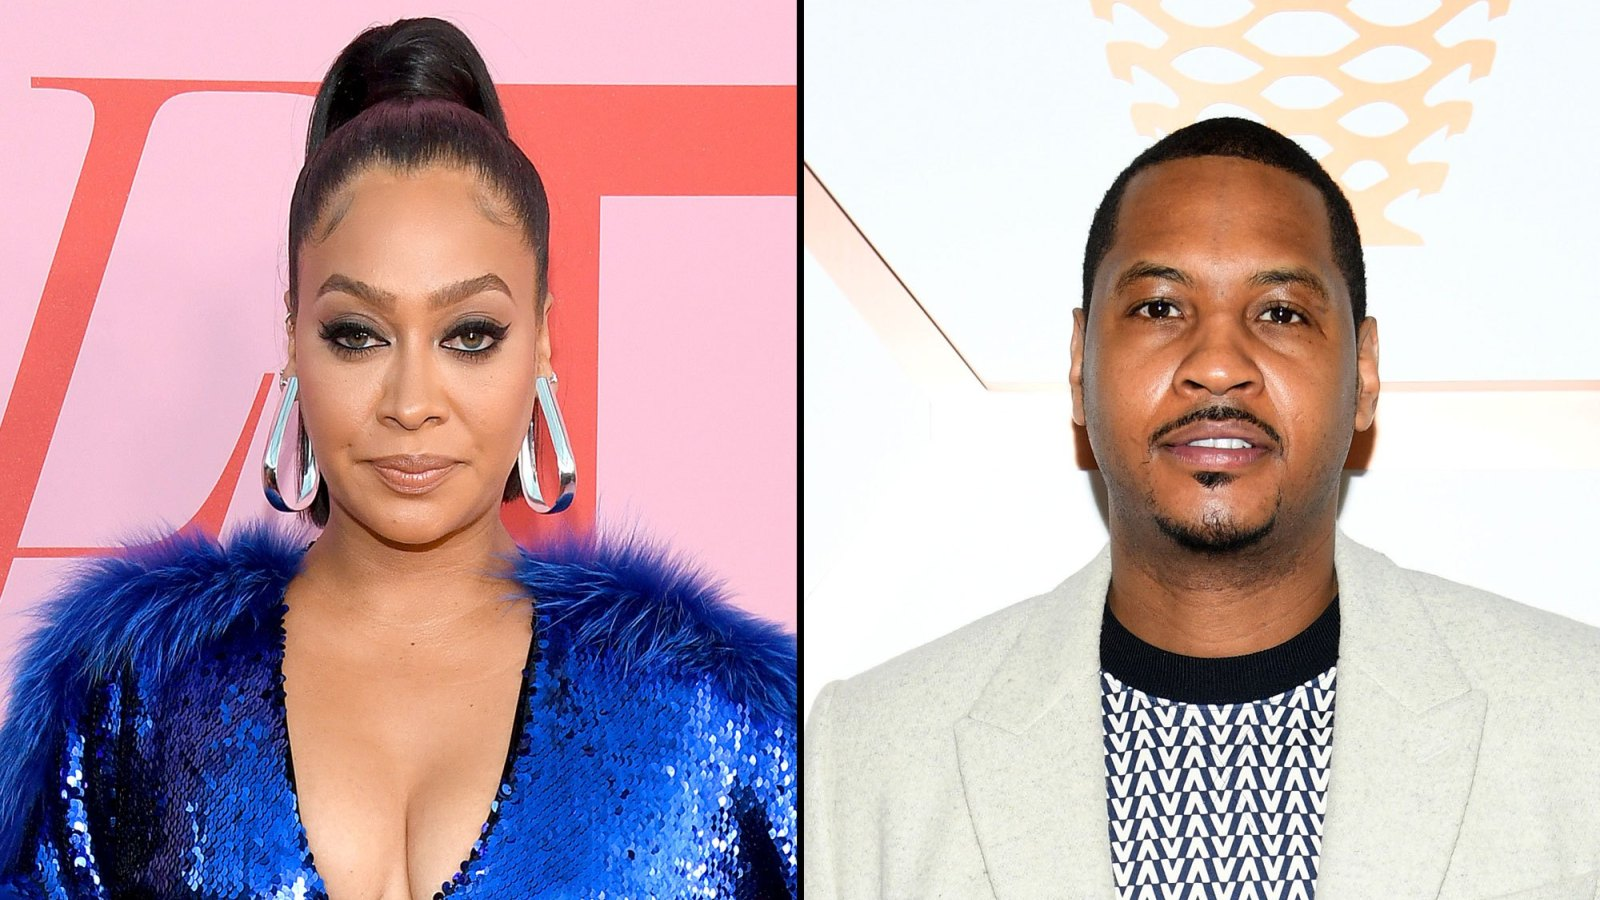 La La Anthony is Reportedly Exploring Legal Options Amid Carmelo Anthony Cheating Rumors